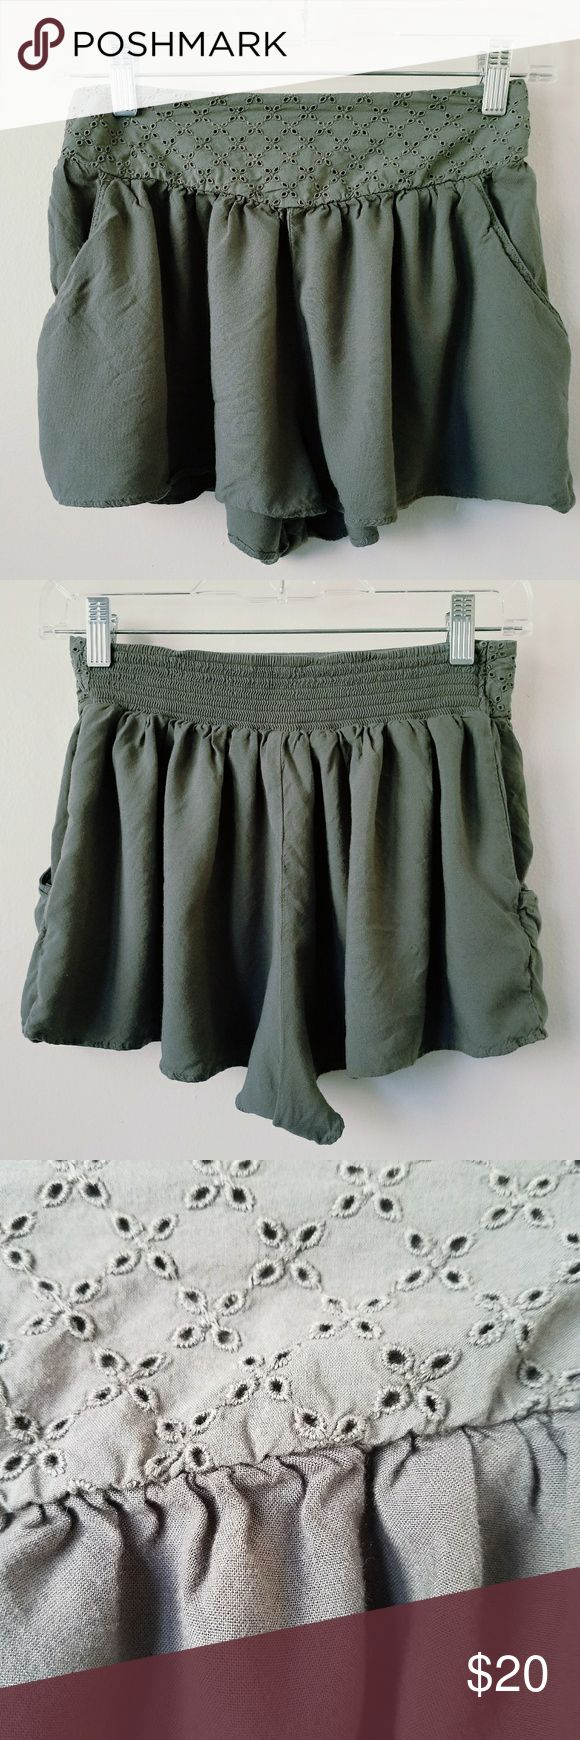 American Eagle Outfitters Military Green Skort Cute and Pleated Skort by American Eagle Outfitters. Has Adorable Perforated Waist Band and Pockets. Nice and Stretchy! Perfect with Strappy Sandals and a White Top. American Eagle Outfitters Skirts